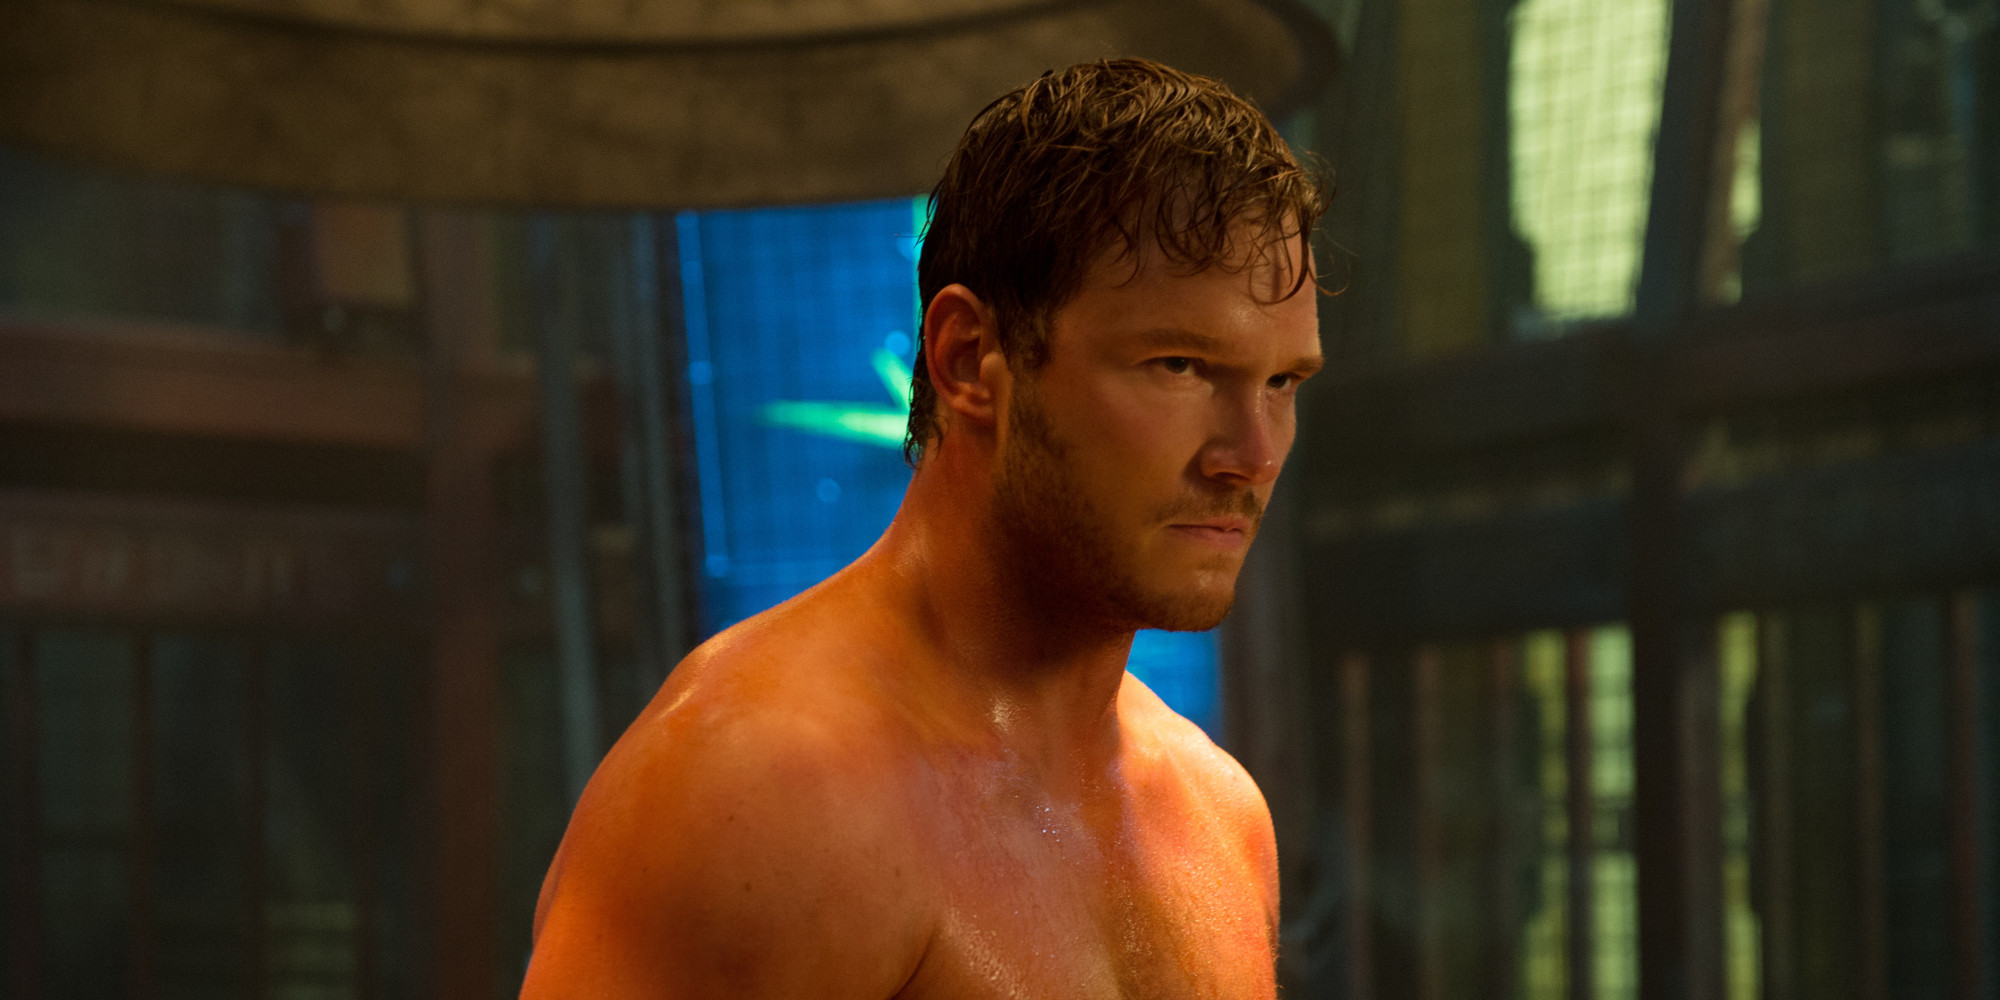 Thanks to guardians of the galaxy chris pratt is our next giant